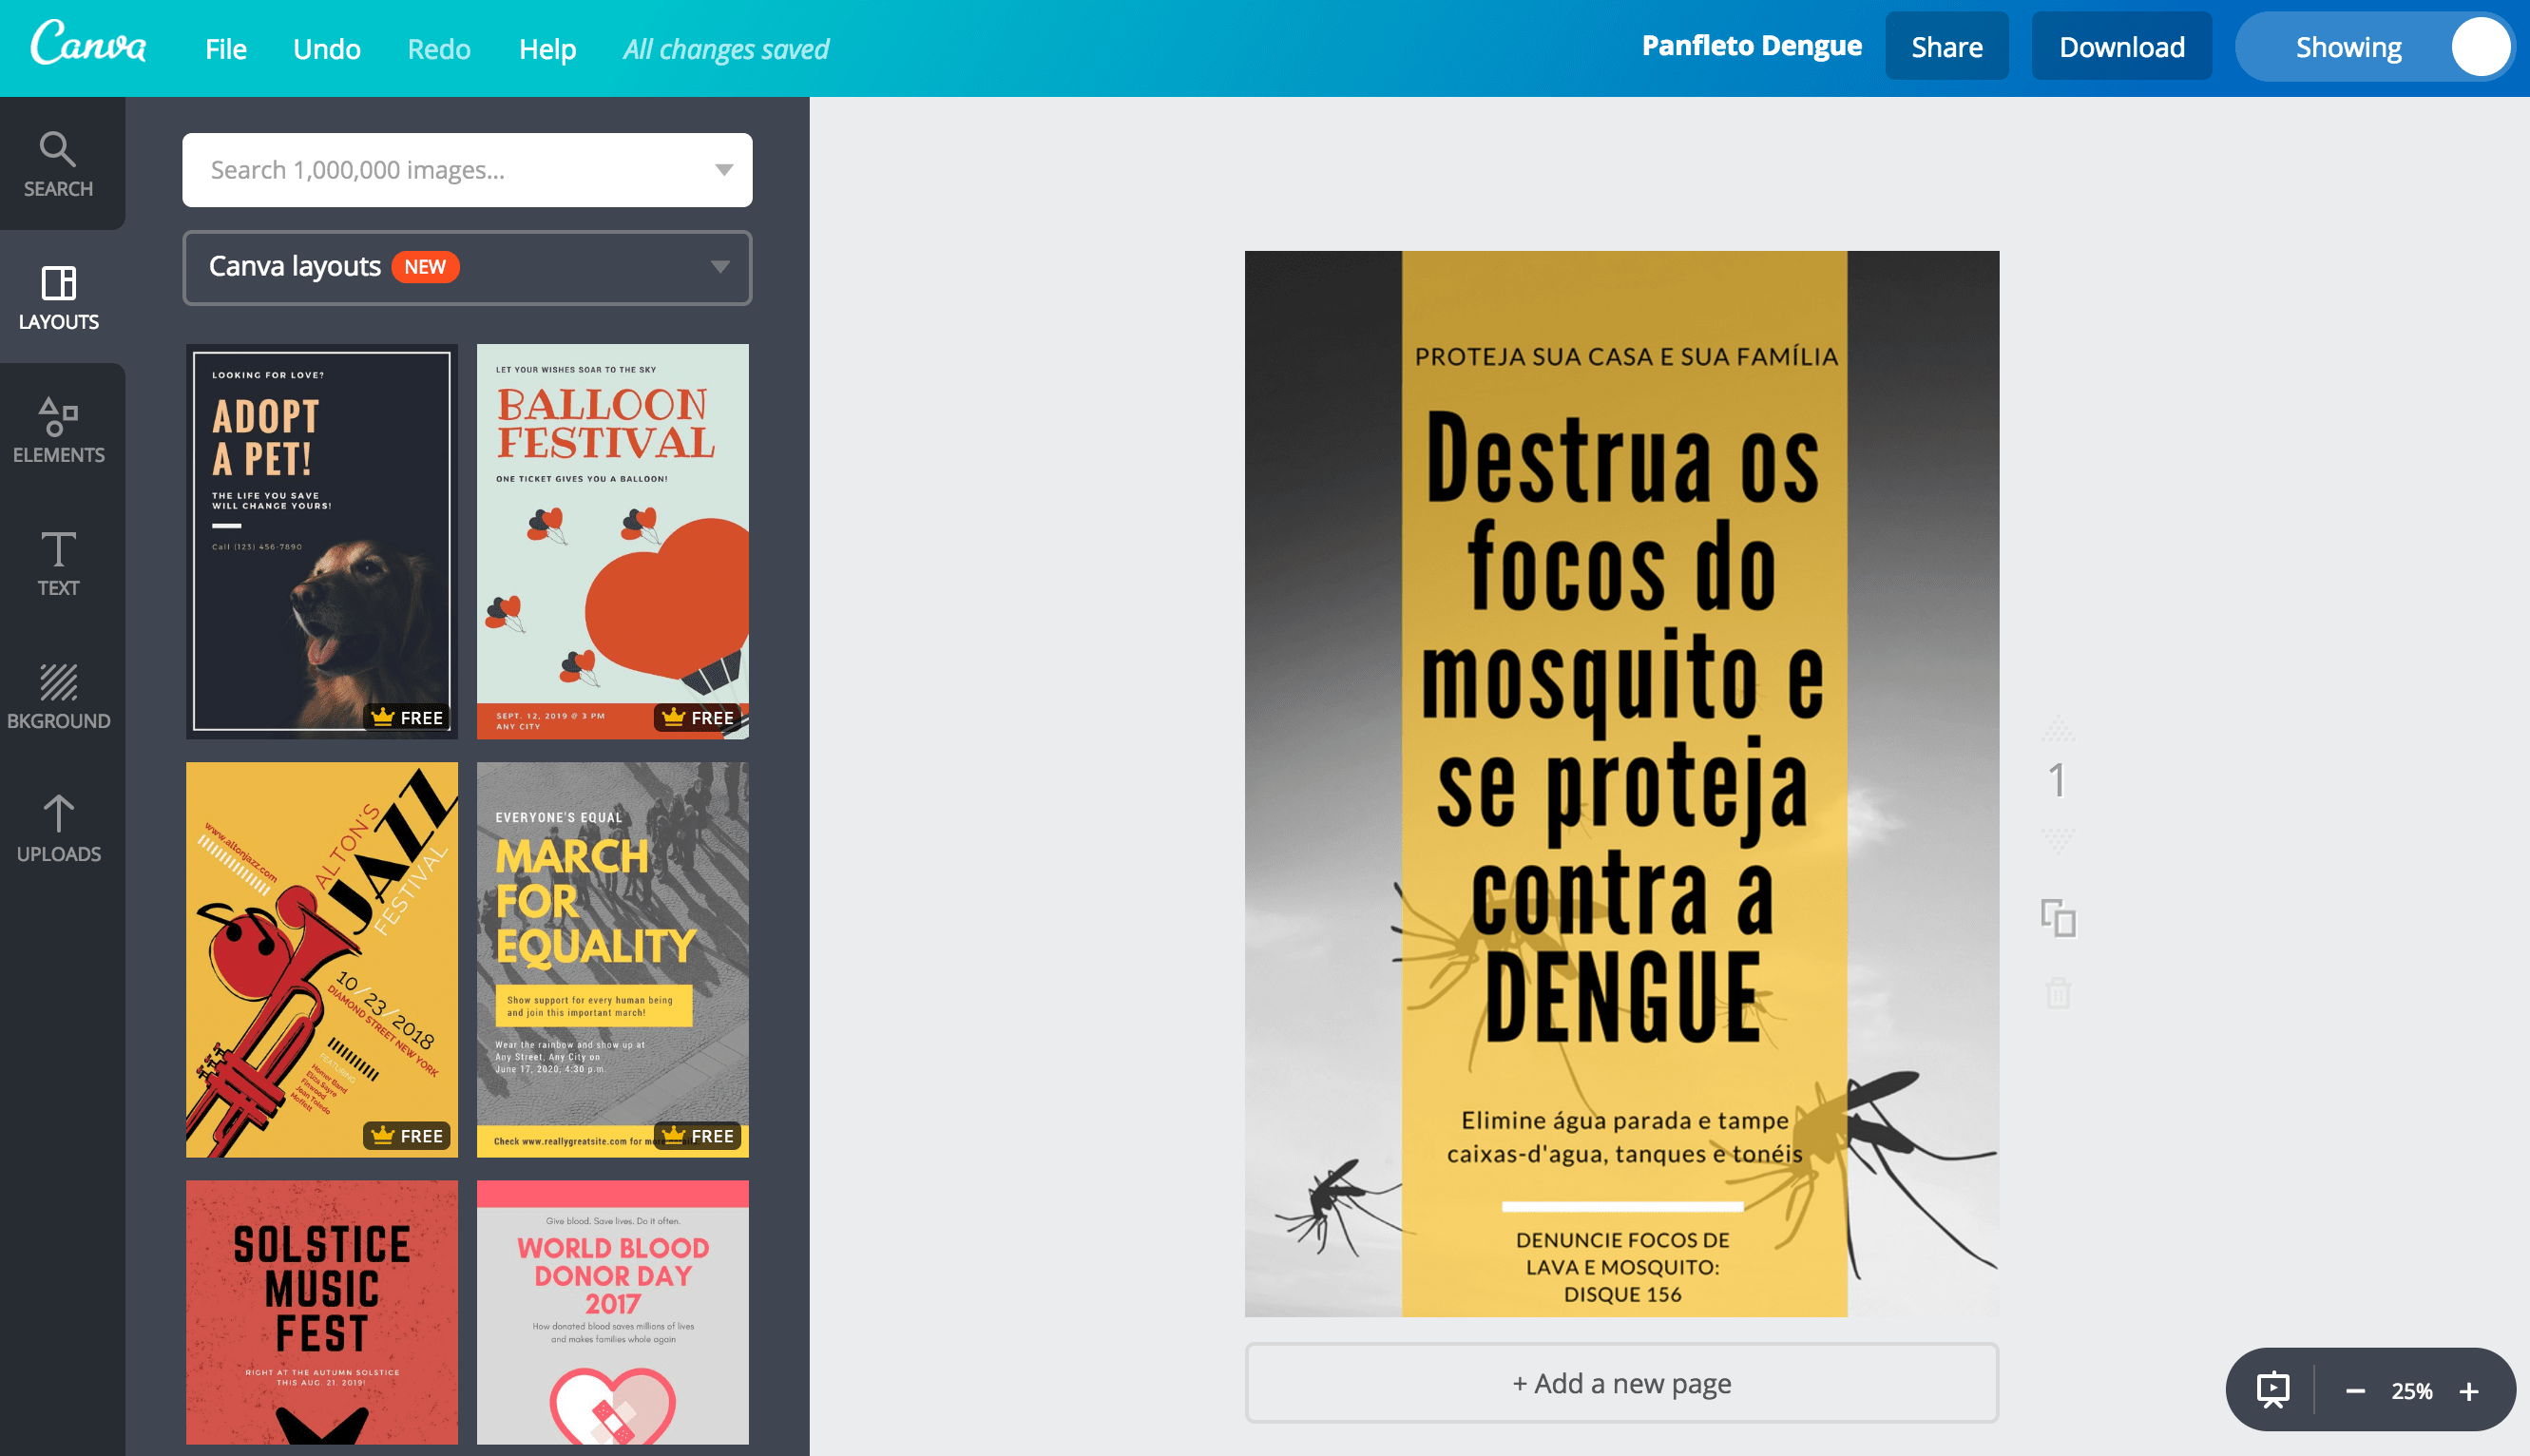 Panfletos sobre a dengue